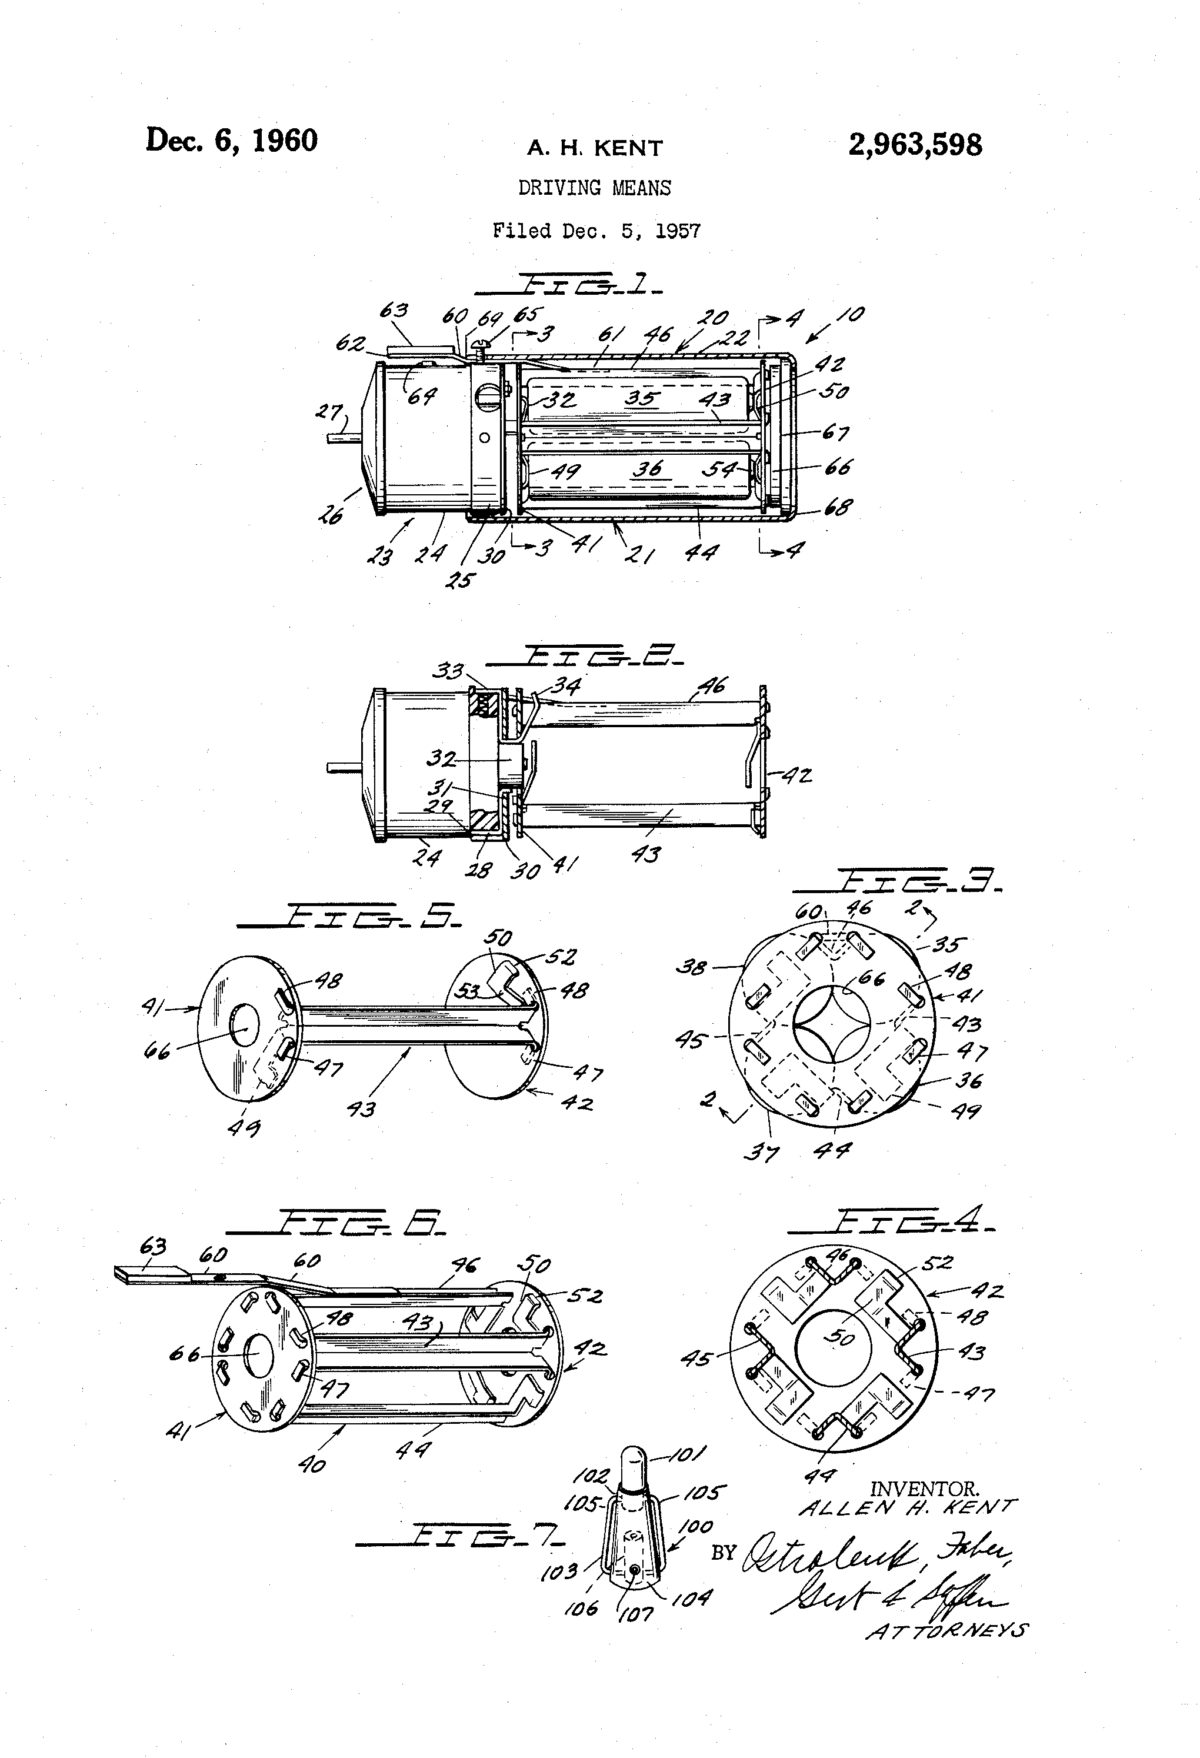 Device Driving Means patent drawing